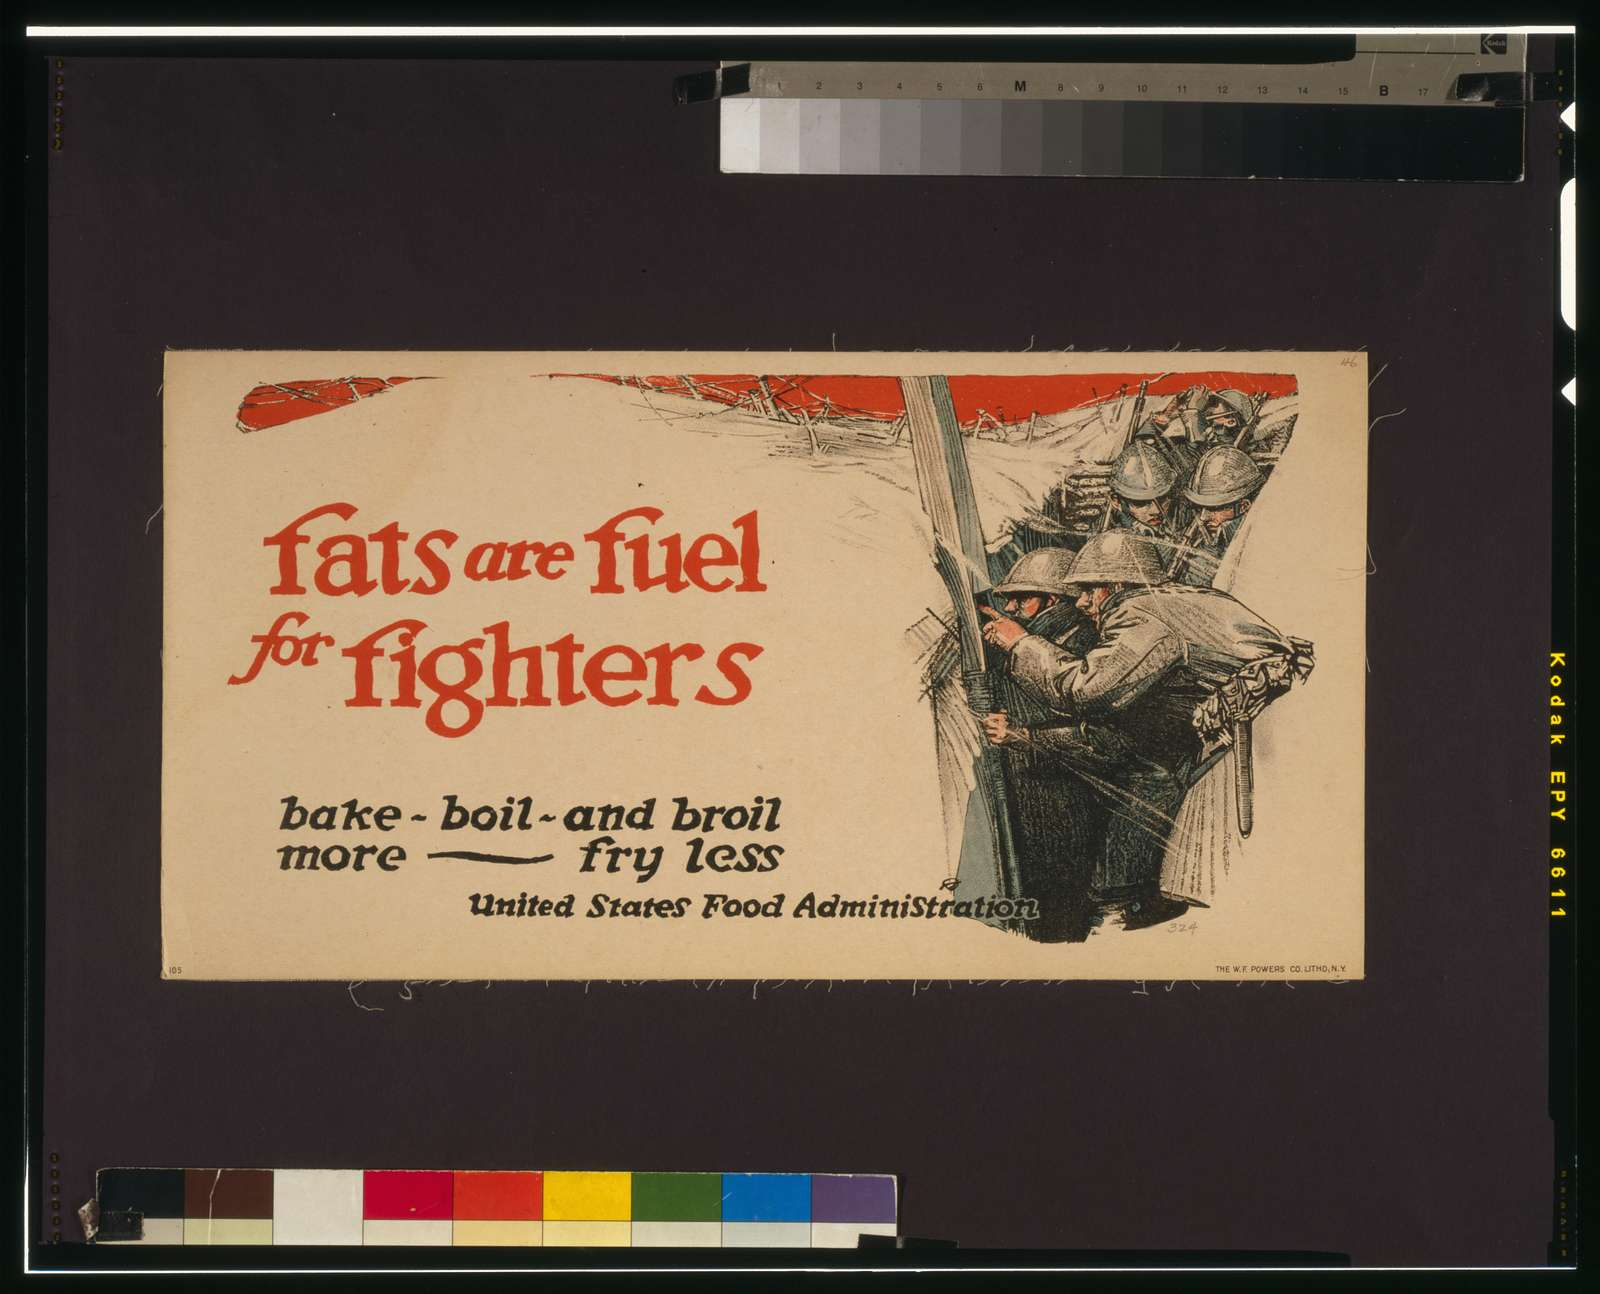 Fats are fuel for fighters Bake, boil, and broil more - fry less.